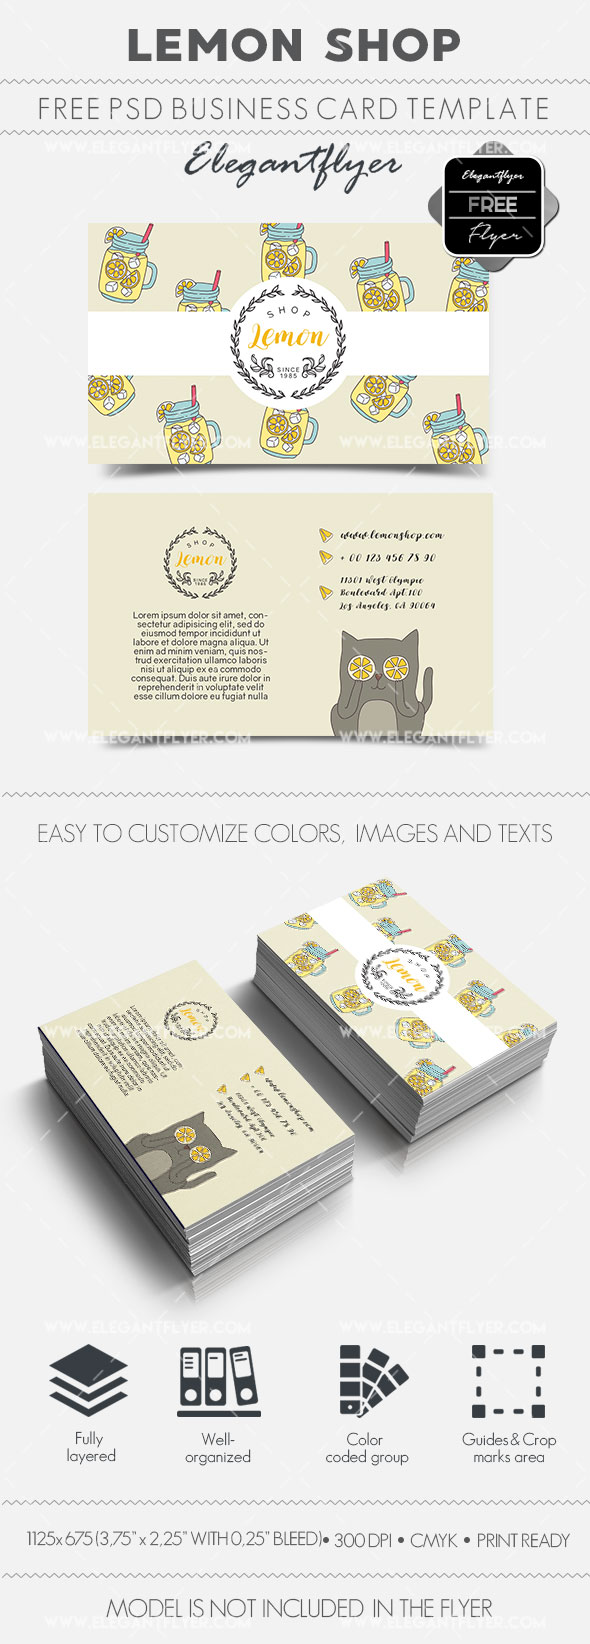 Lemon Shop – Free Business Card Templates PSD